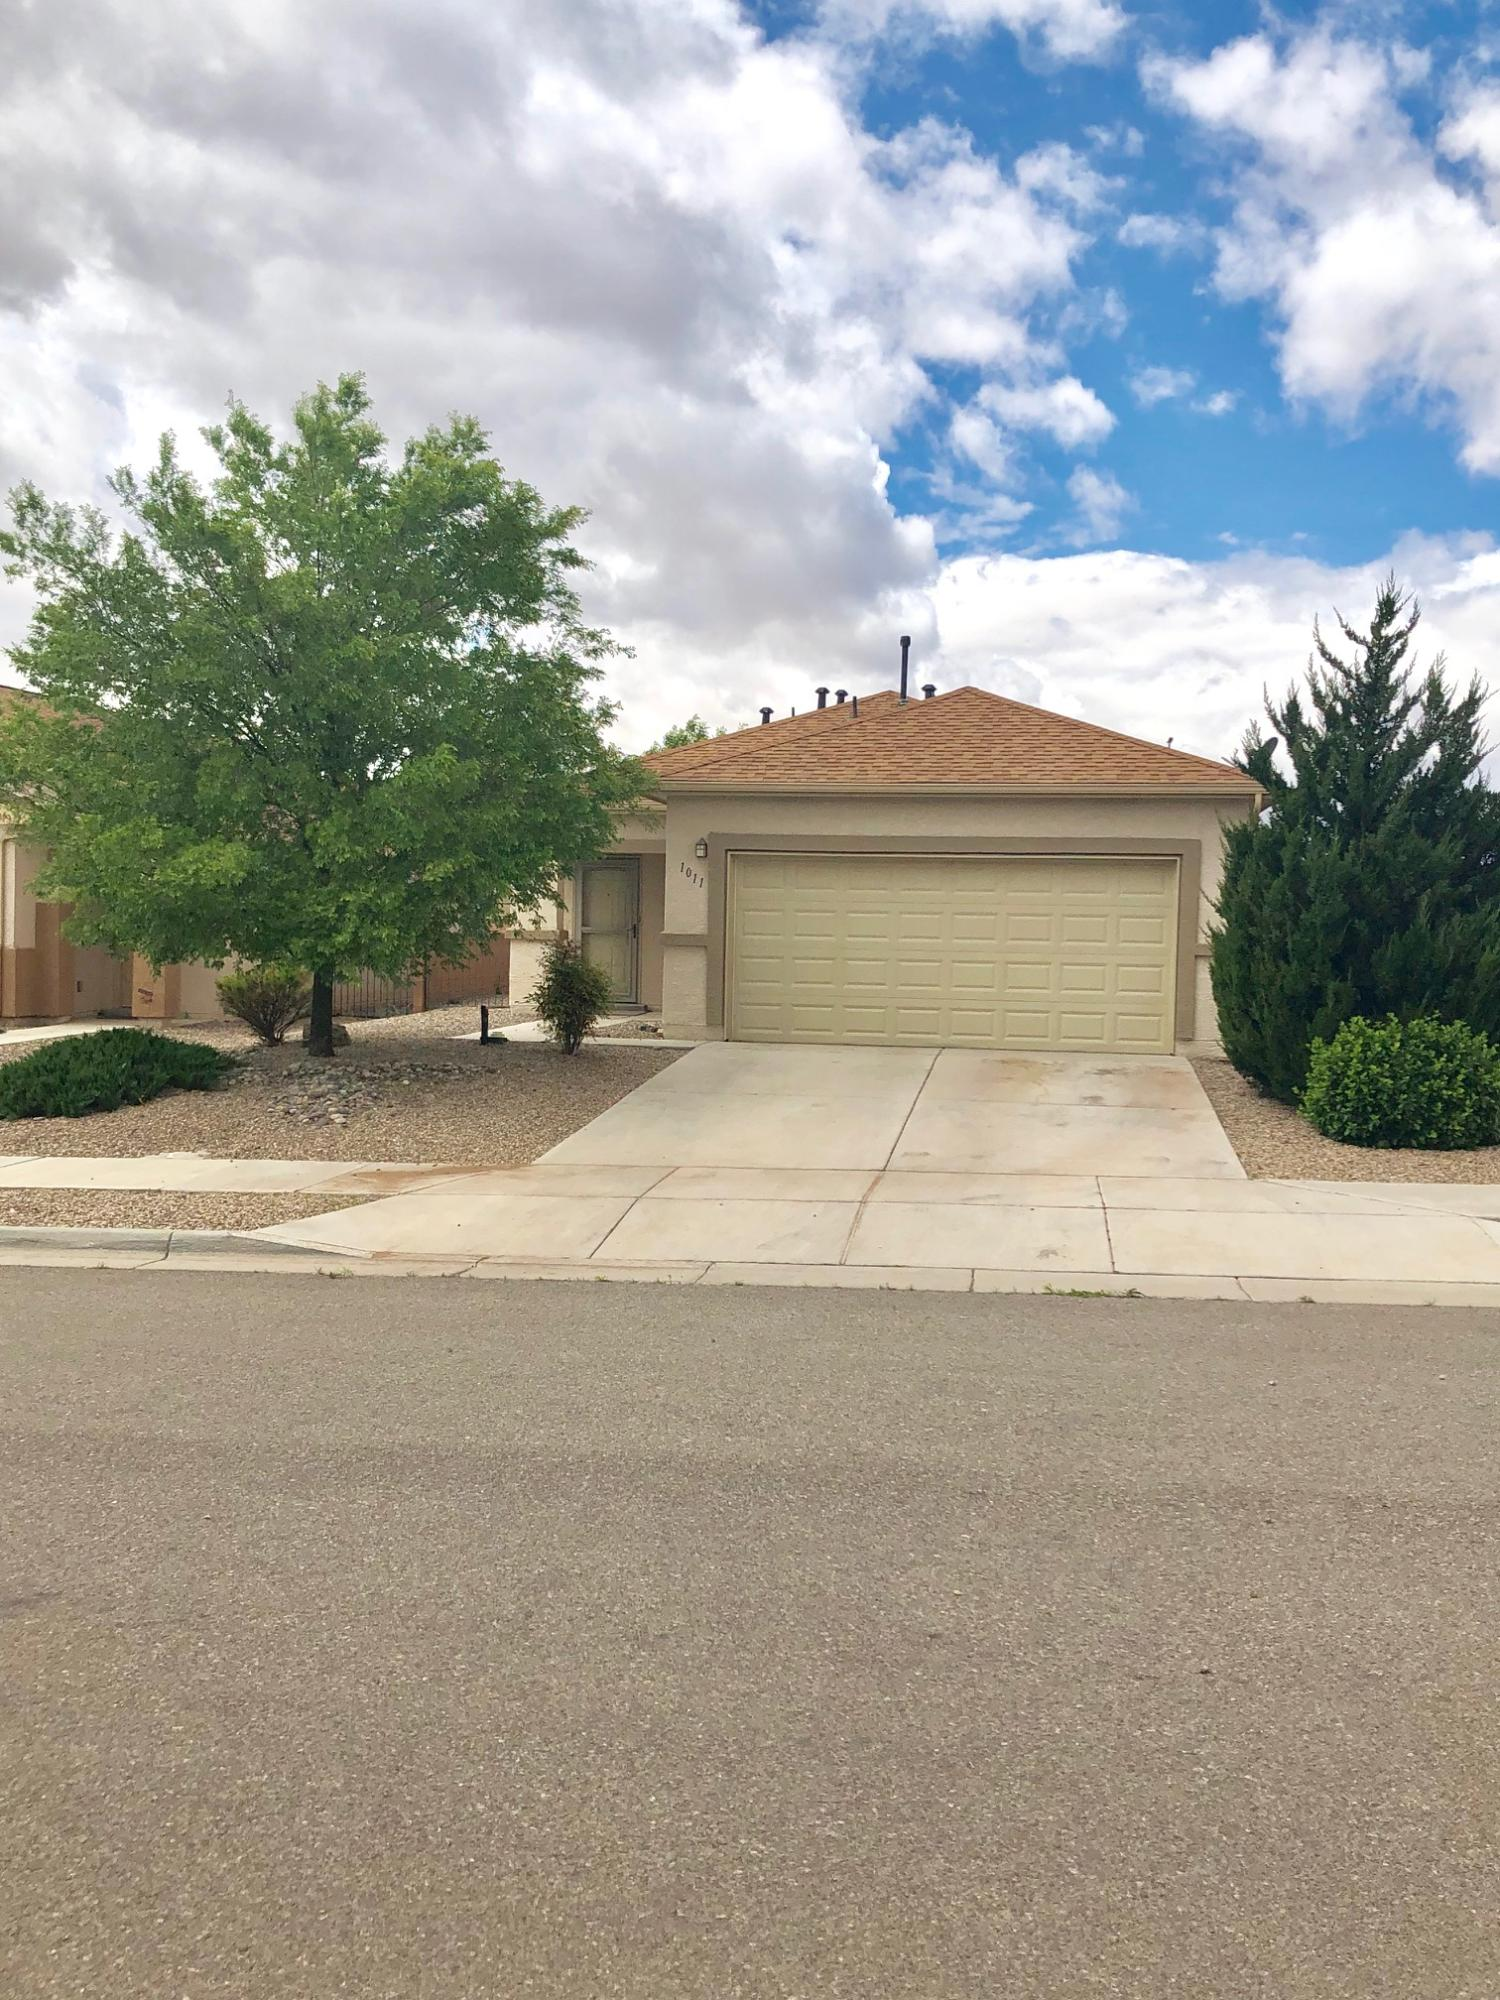 1011 NW El Prado Street, Rio Rancho in Sandoval County, NM 87144 Home for Sale